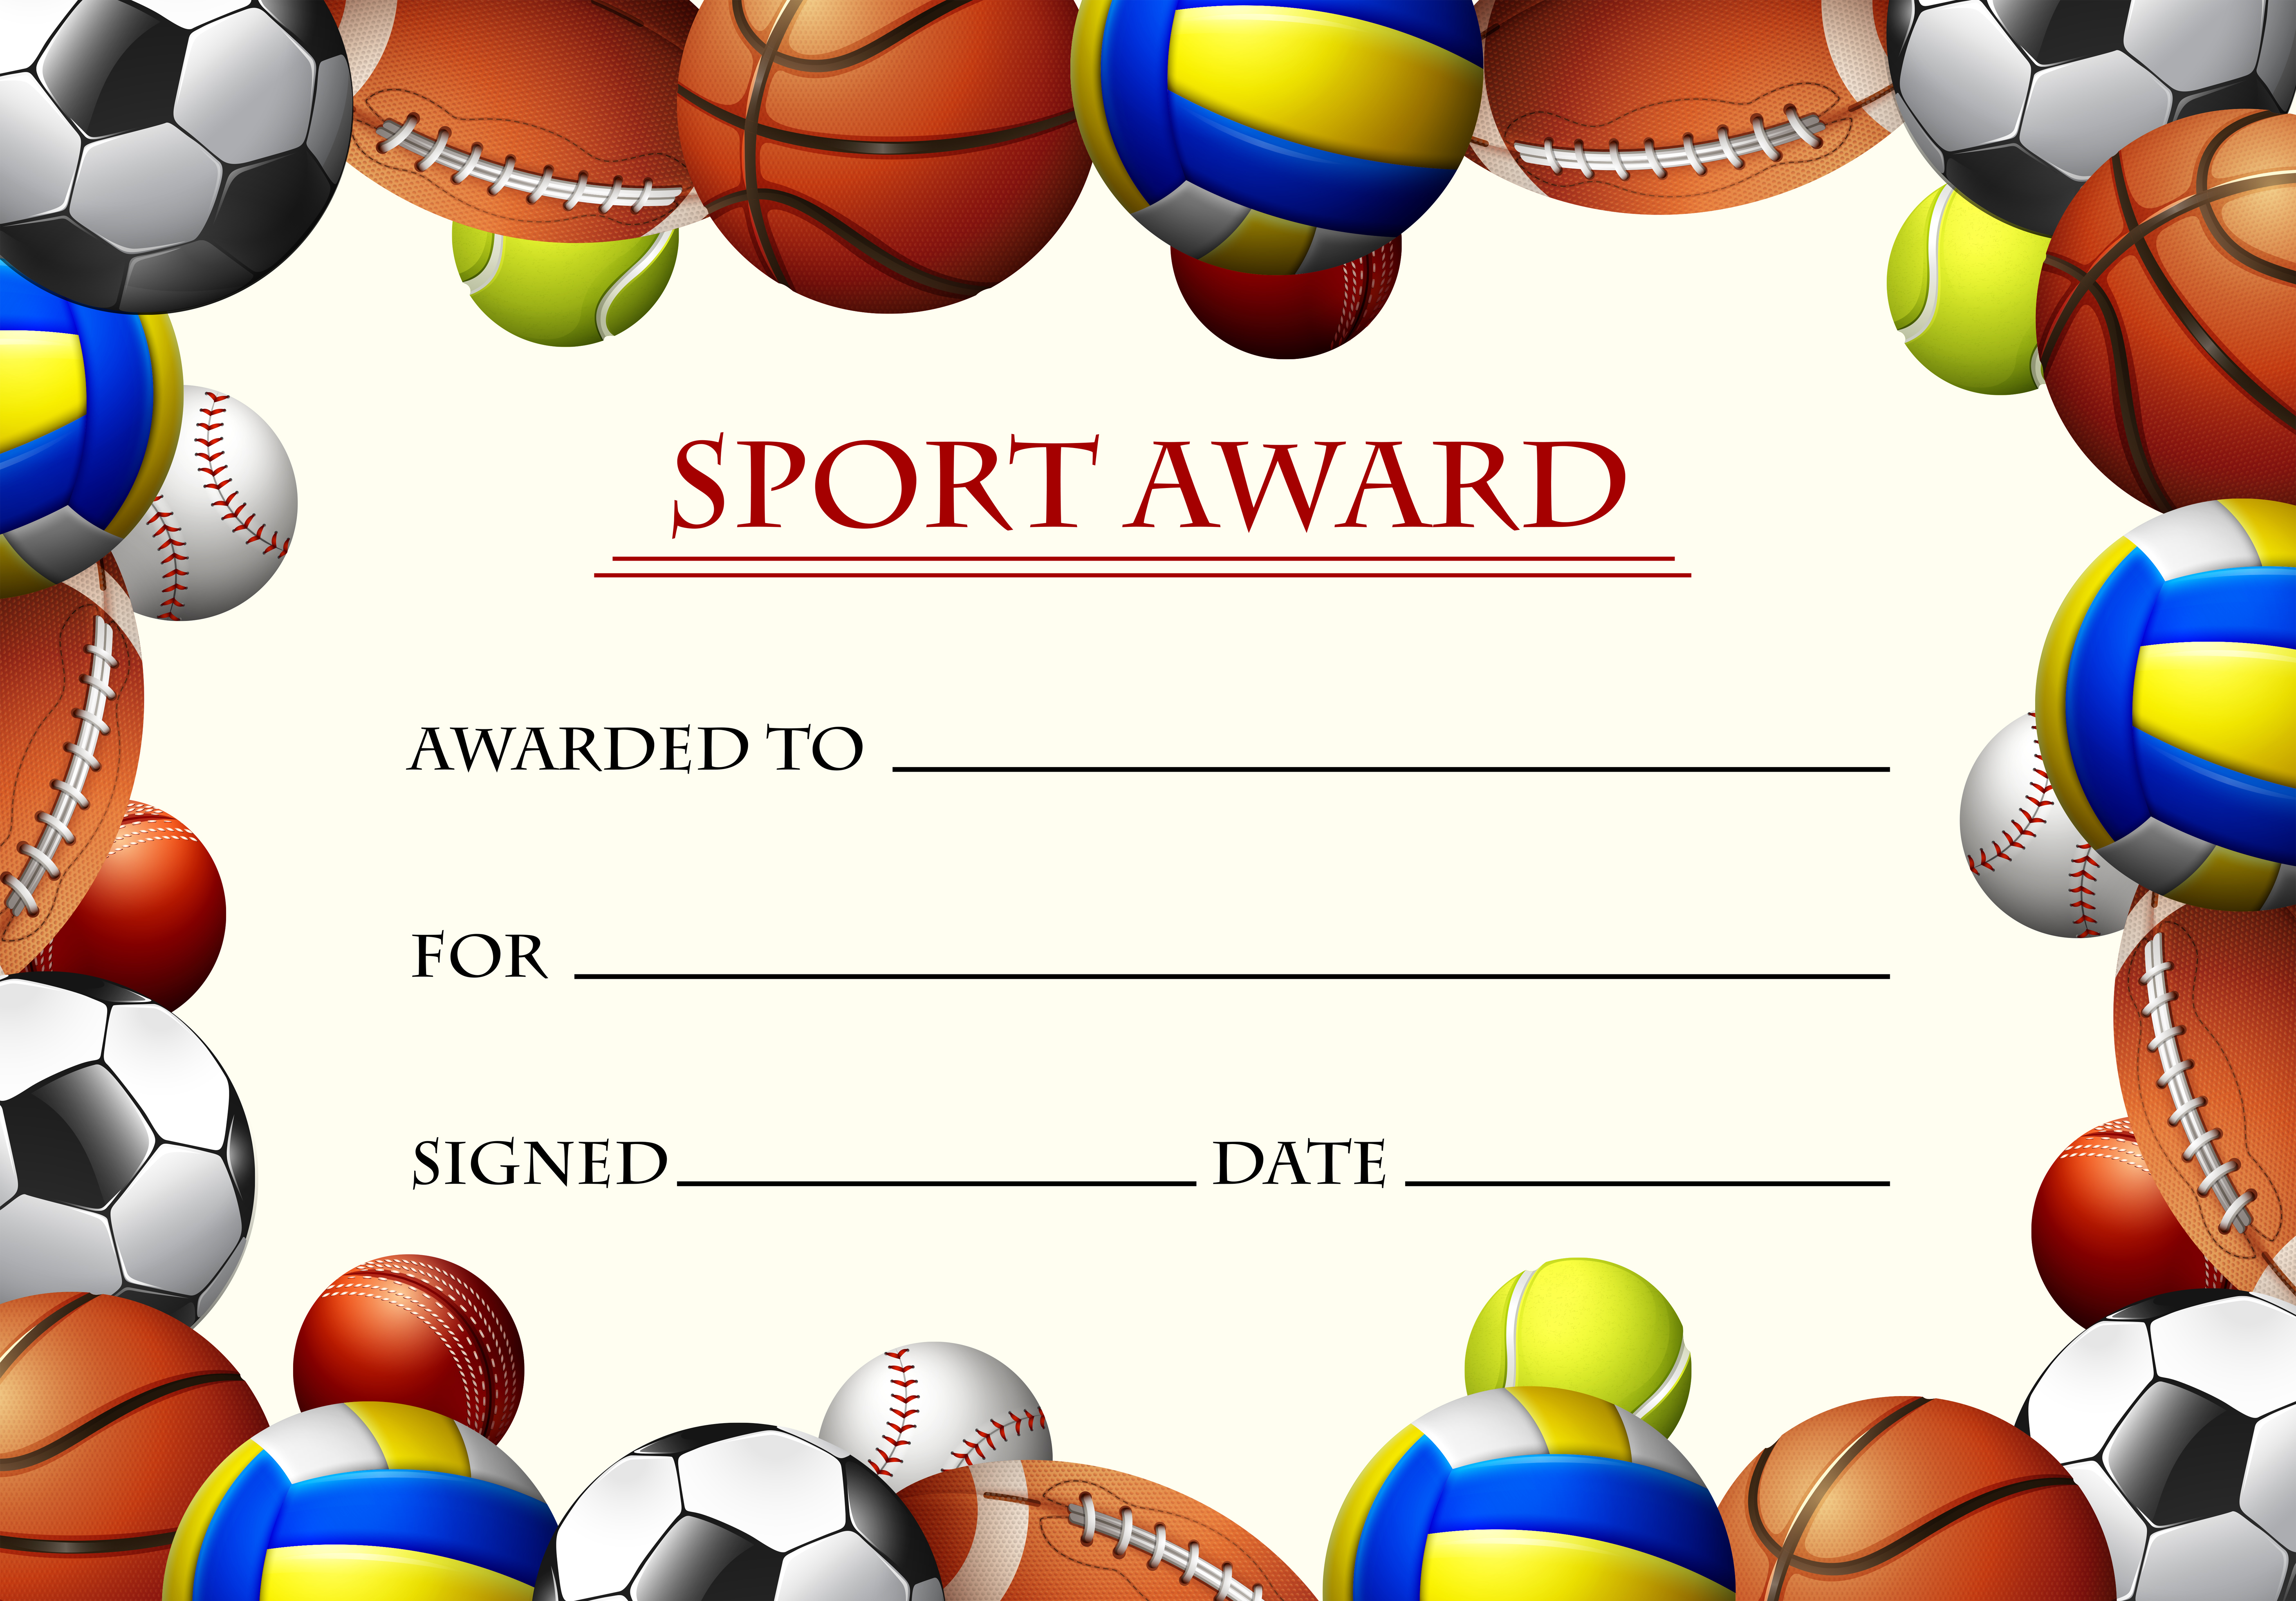 sports certificate free vector art